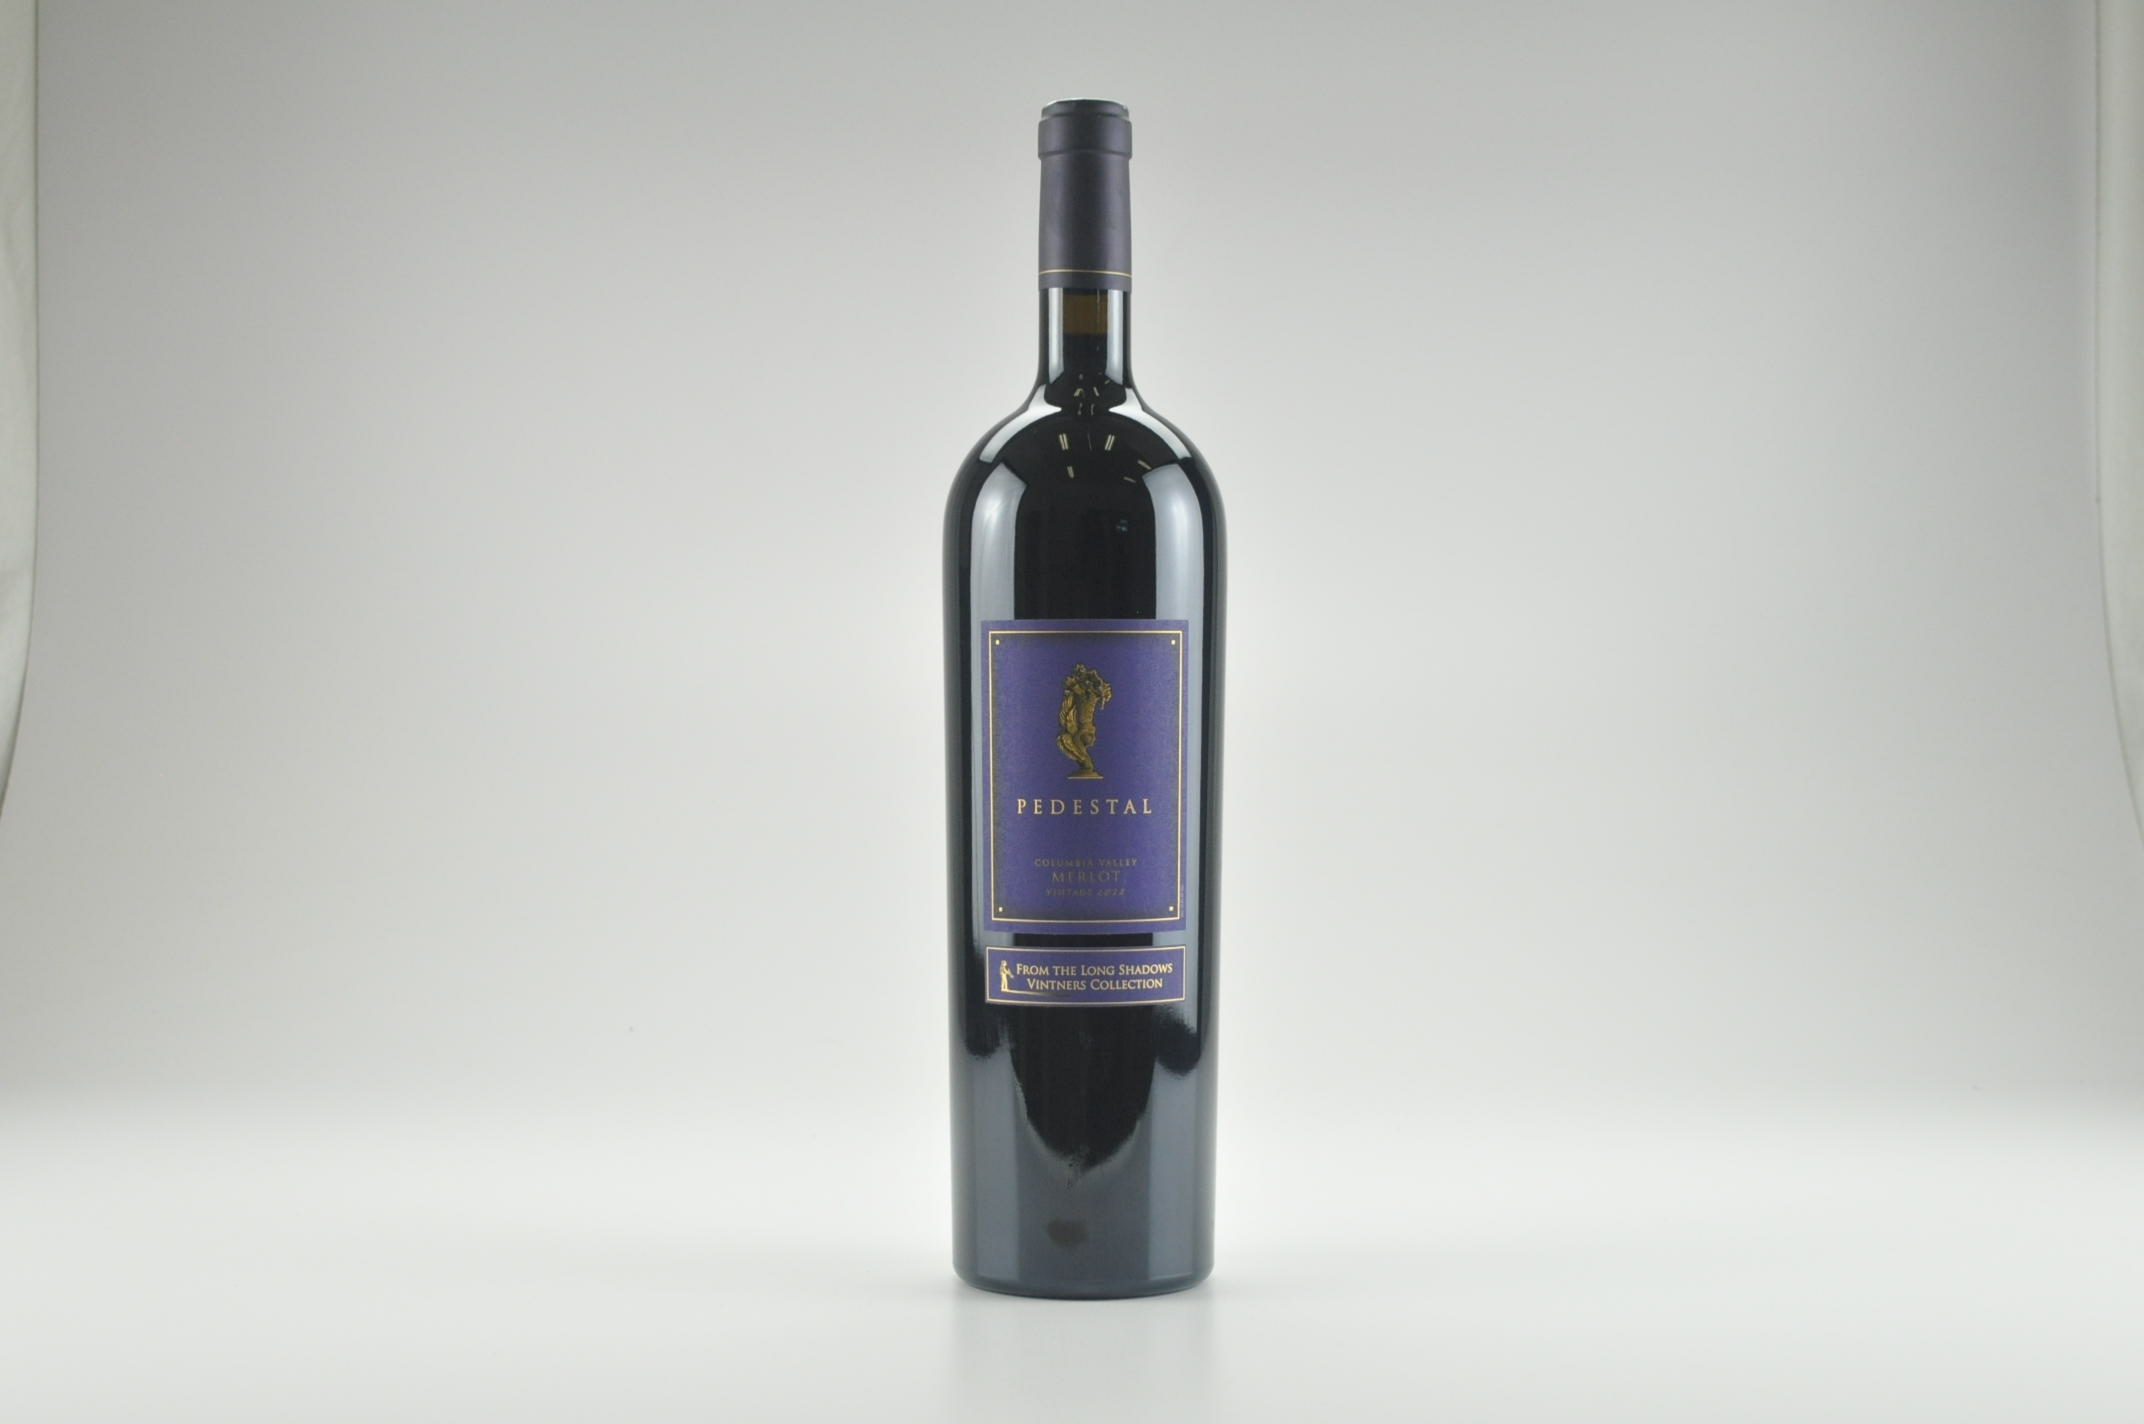 2011 Long Shadows Pedestal Merlot 1.5 L, Columbia Valley RP--94